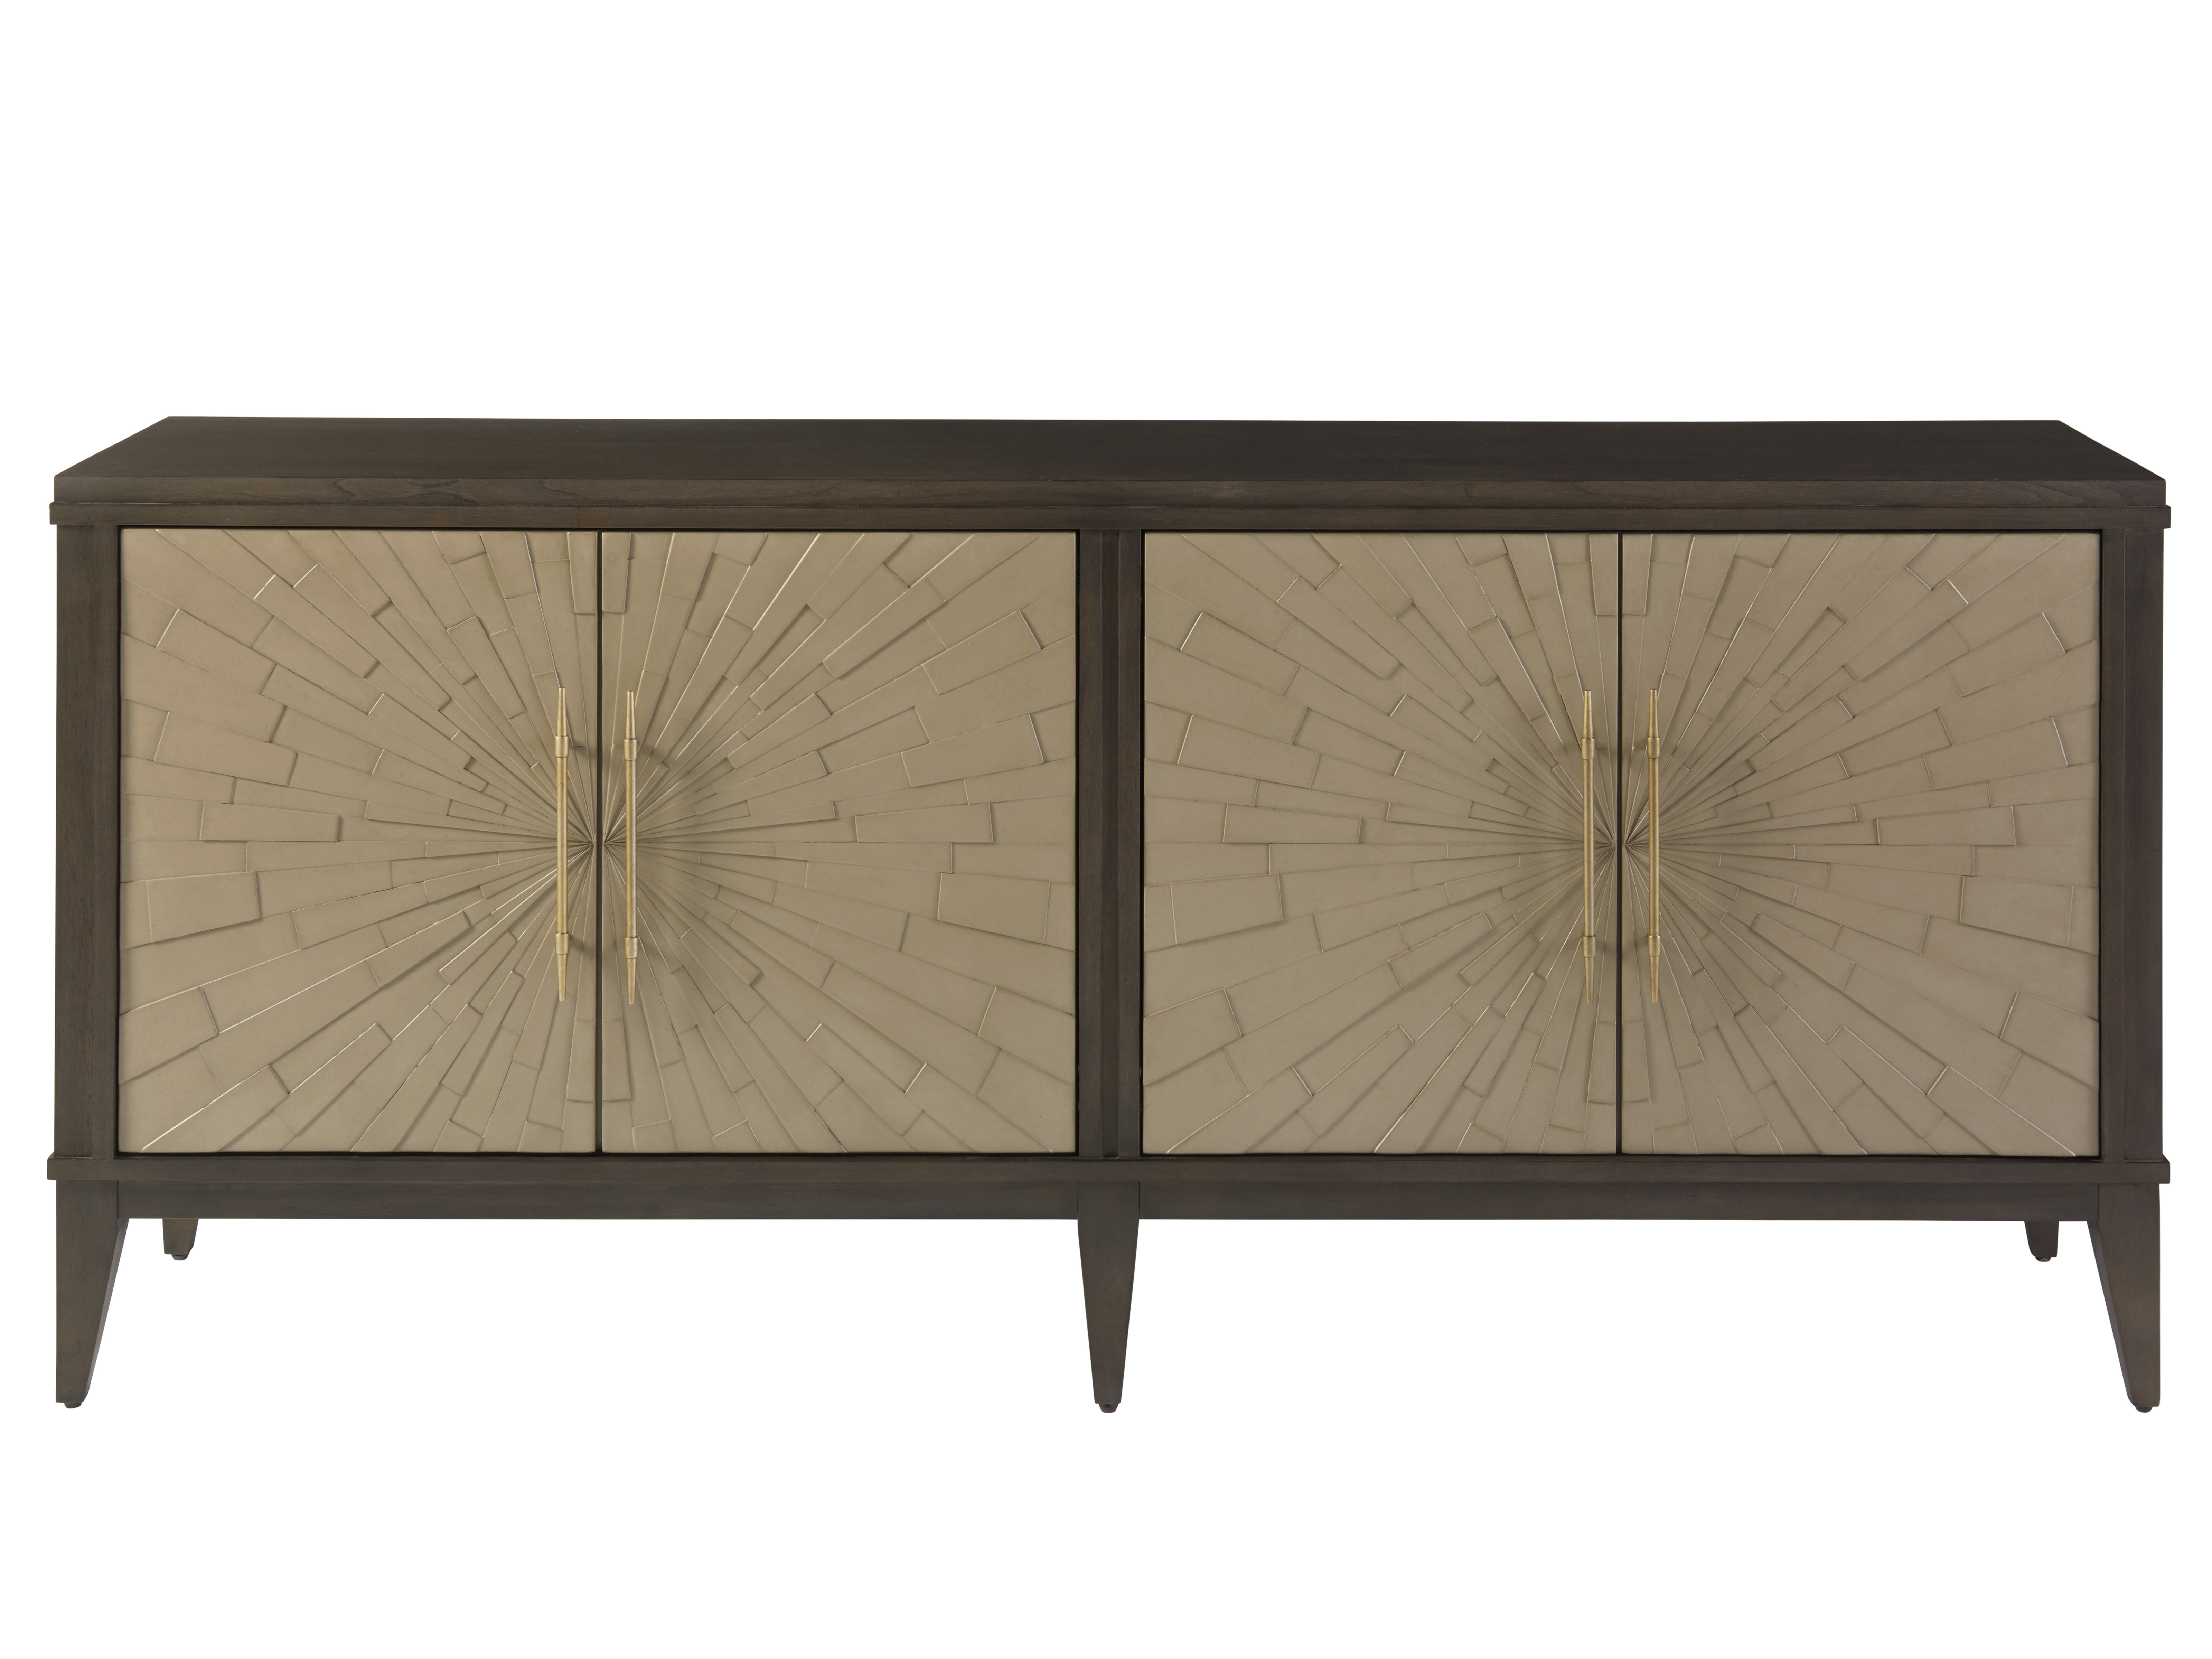 Candace Door Credenzas Intended For Preferred Everly Quinn Hohman Credenza (View 7 of 20)